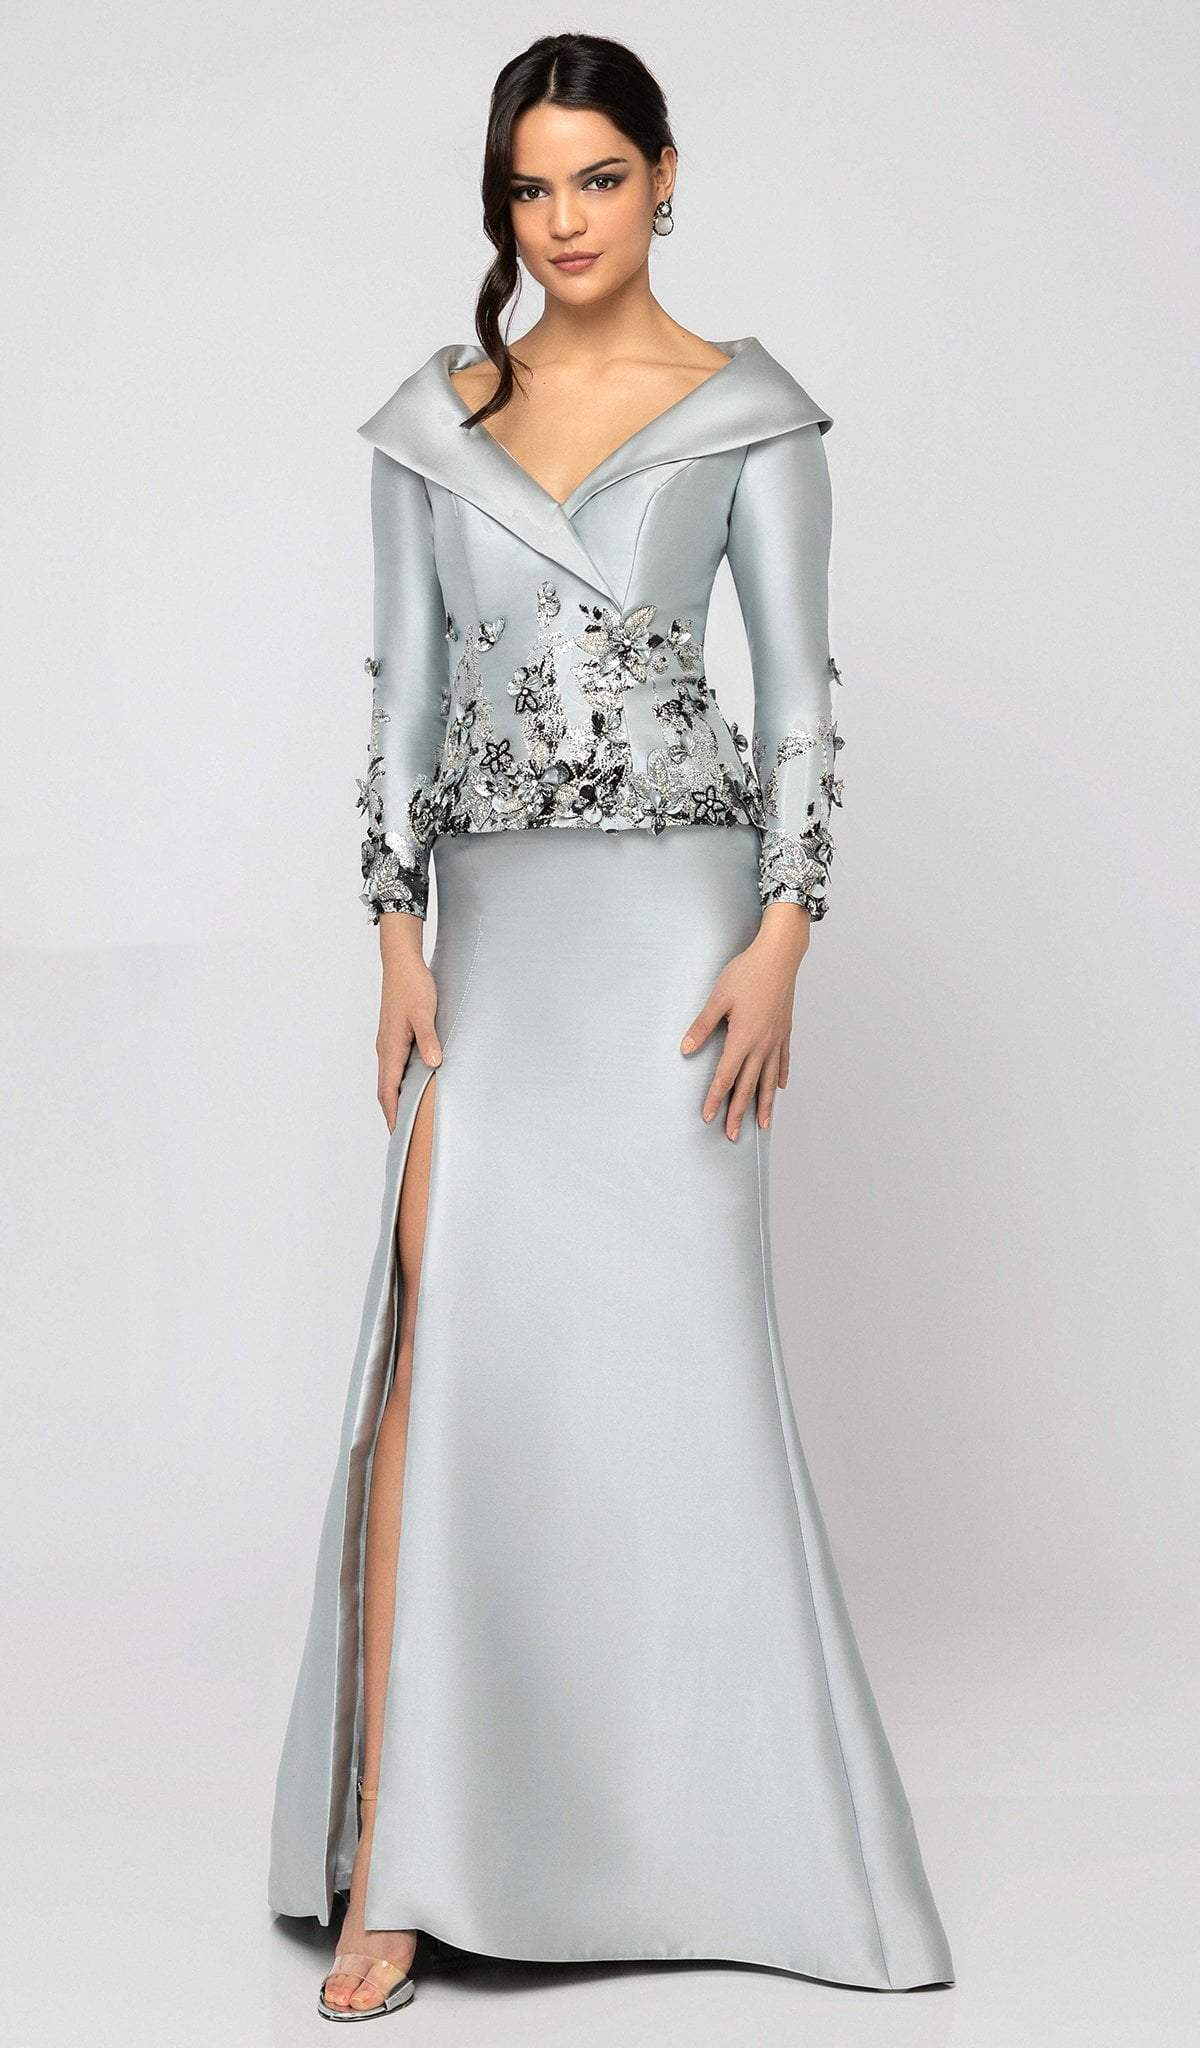 Terani Couture - 1911M9323 Beaded Floral Appliqued Trumpet Gown In Silver and Gray